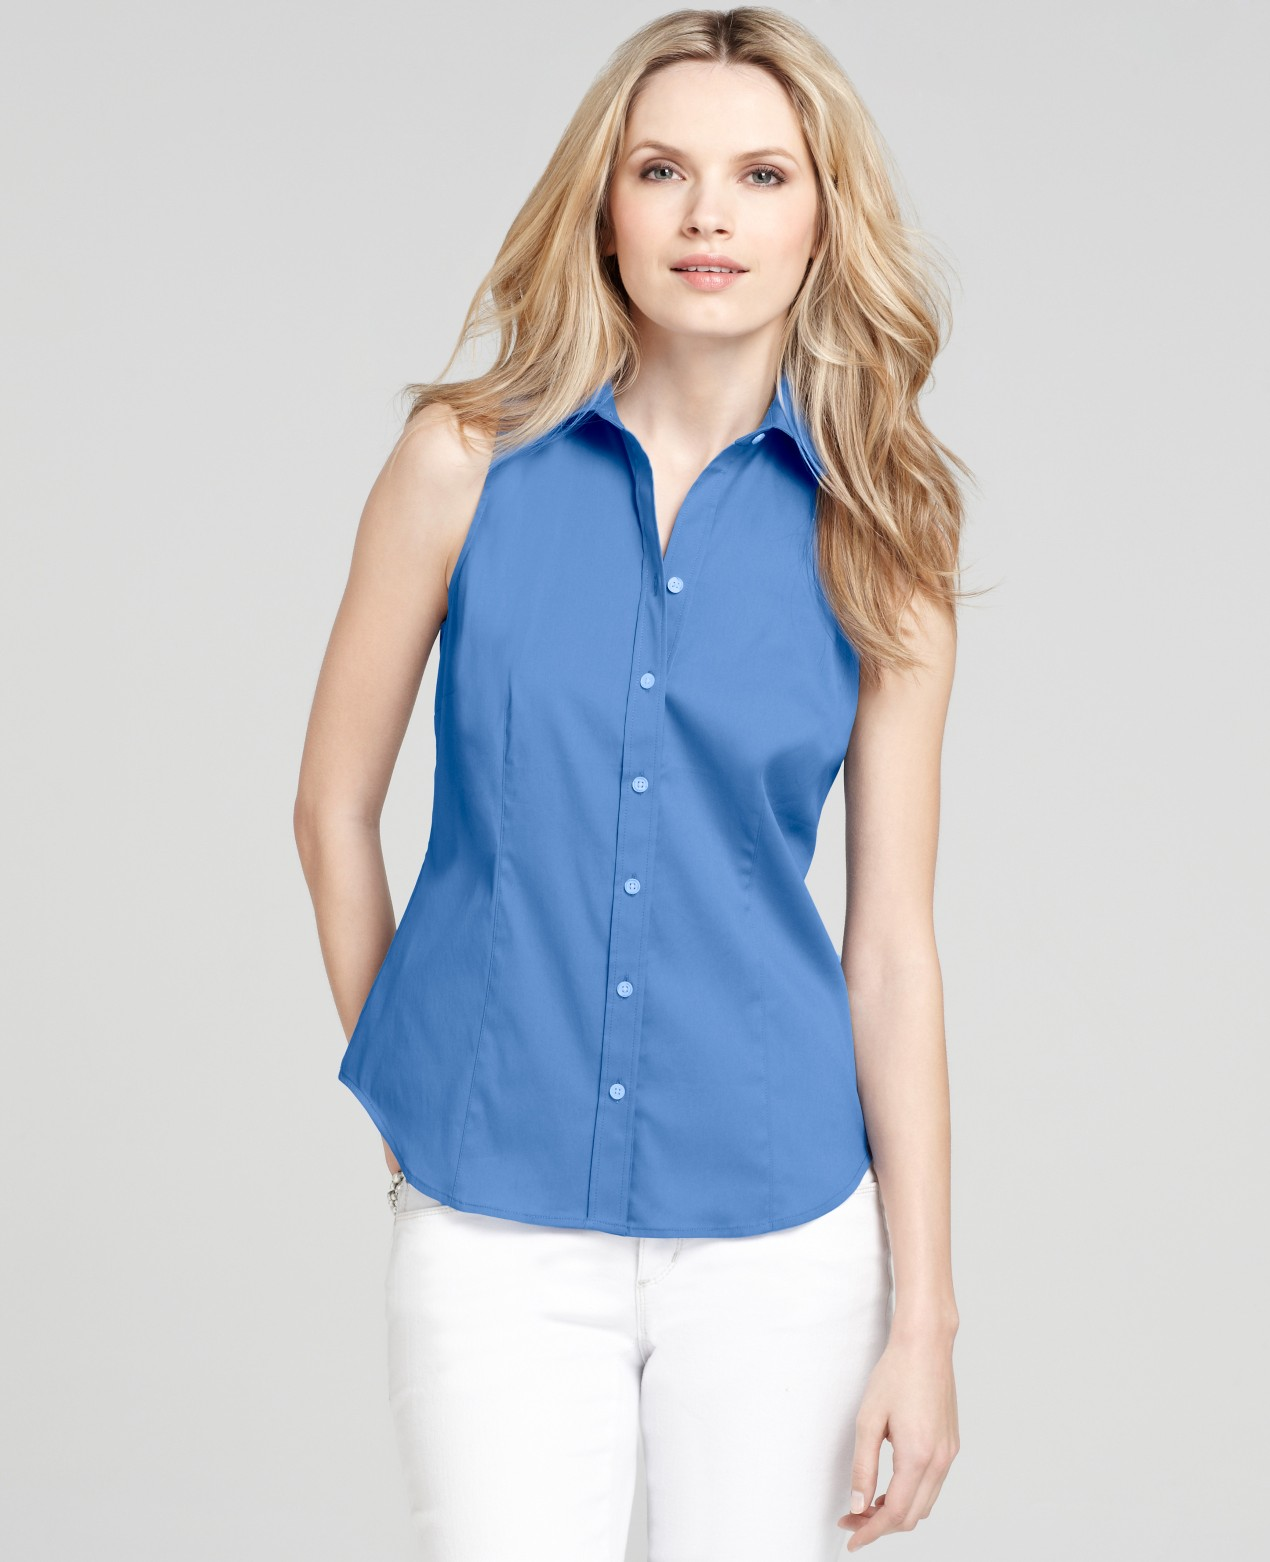 Ann taylor Stretch Cotton Sleeveless Button Down Shirt in Blue | Lyst